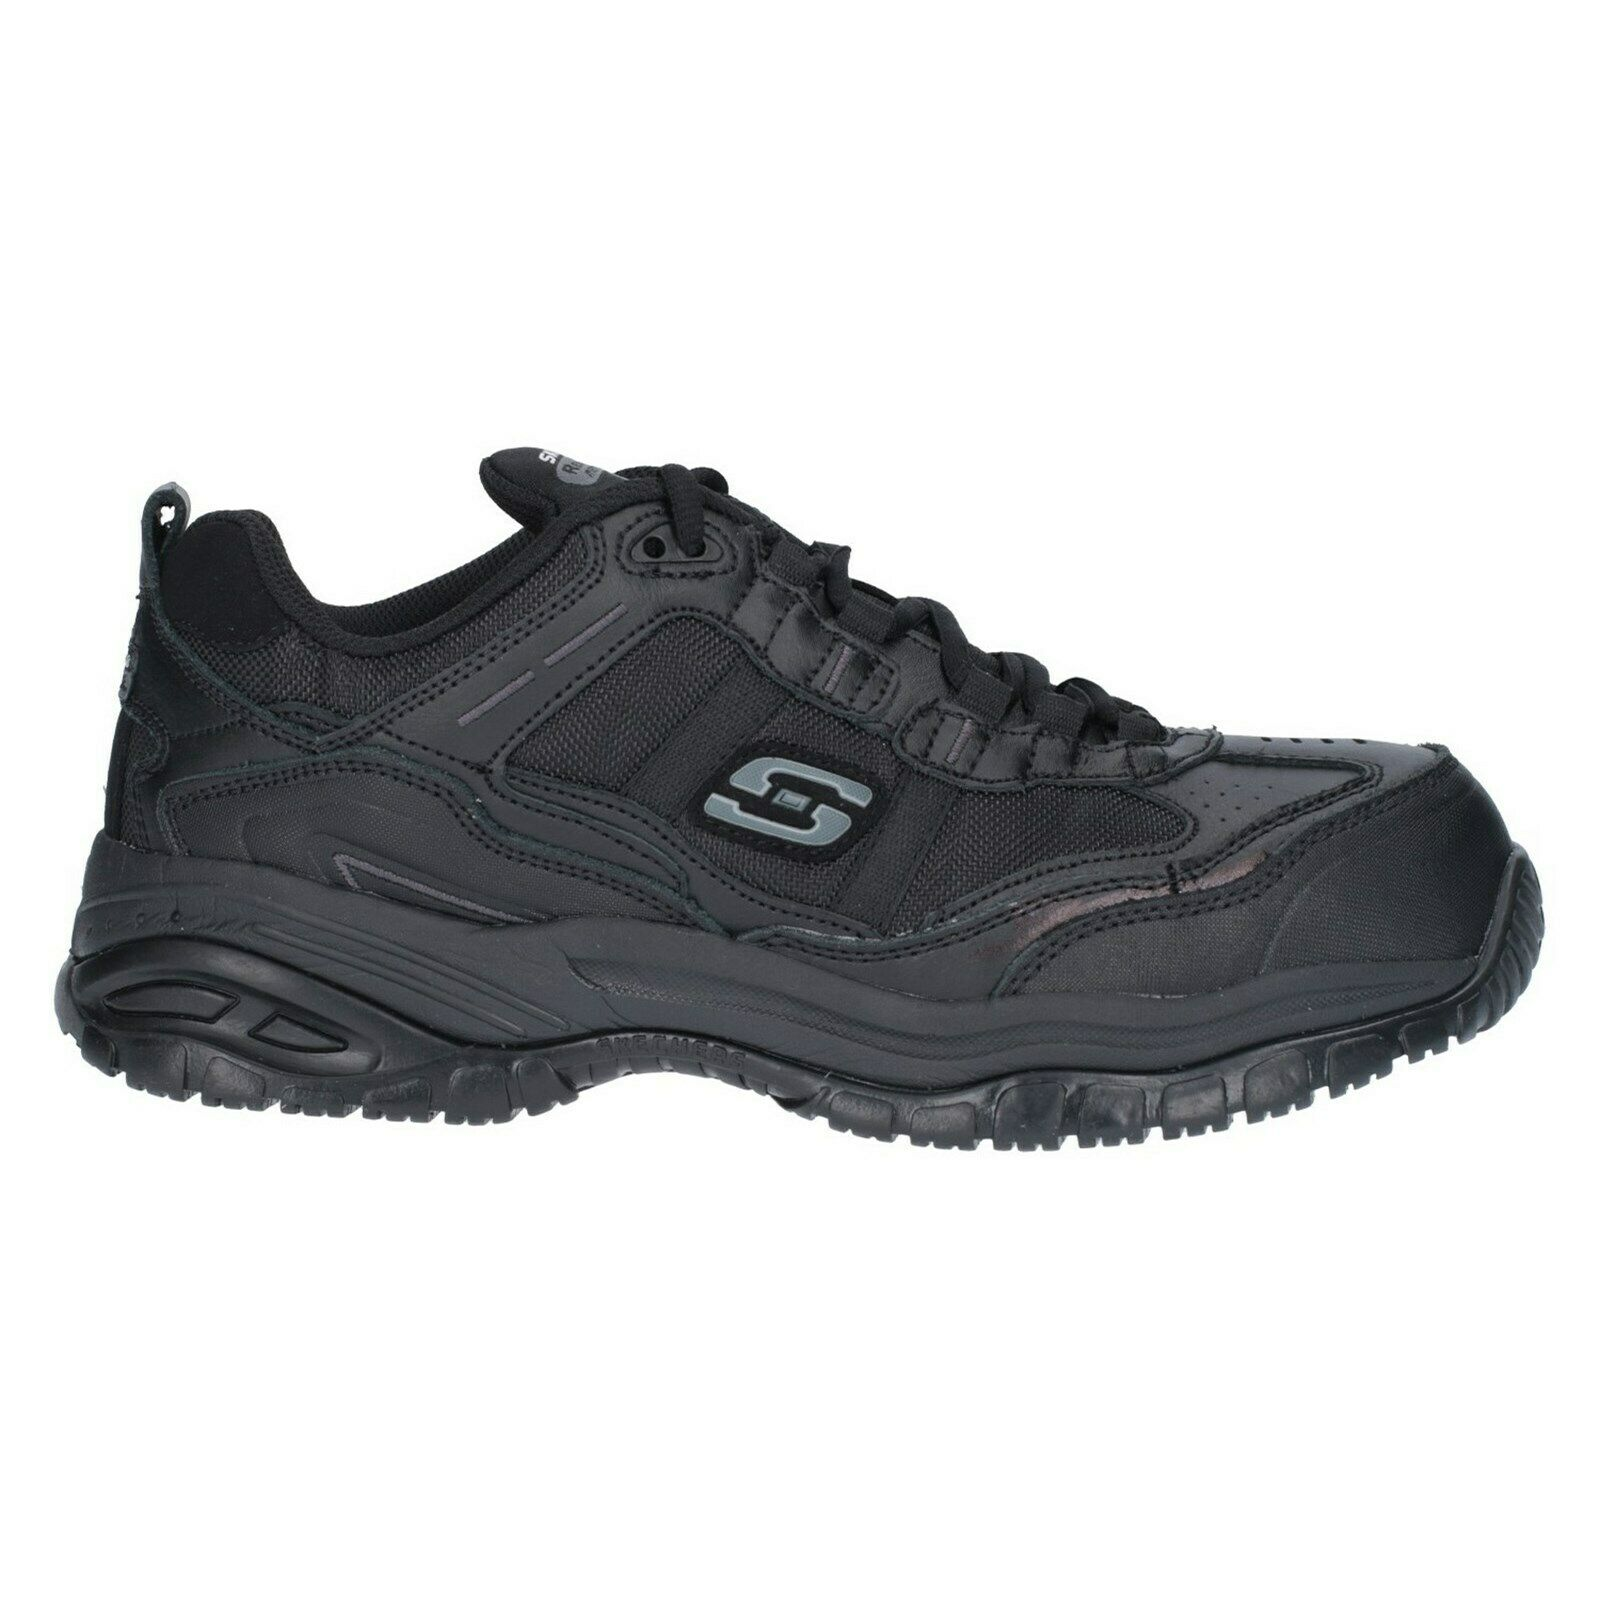 Skechers Soft Stride Safety schuhe Composite Toe Memory Foam Mens Work Trainers